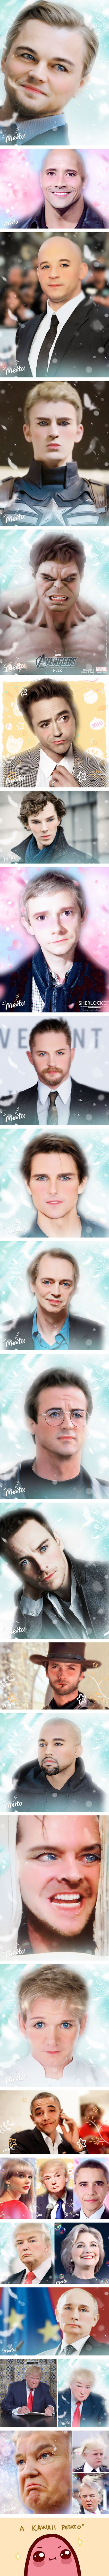 People are turning celebrities into anime-like perfection